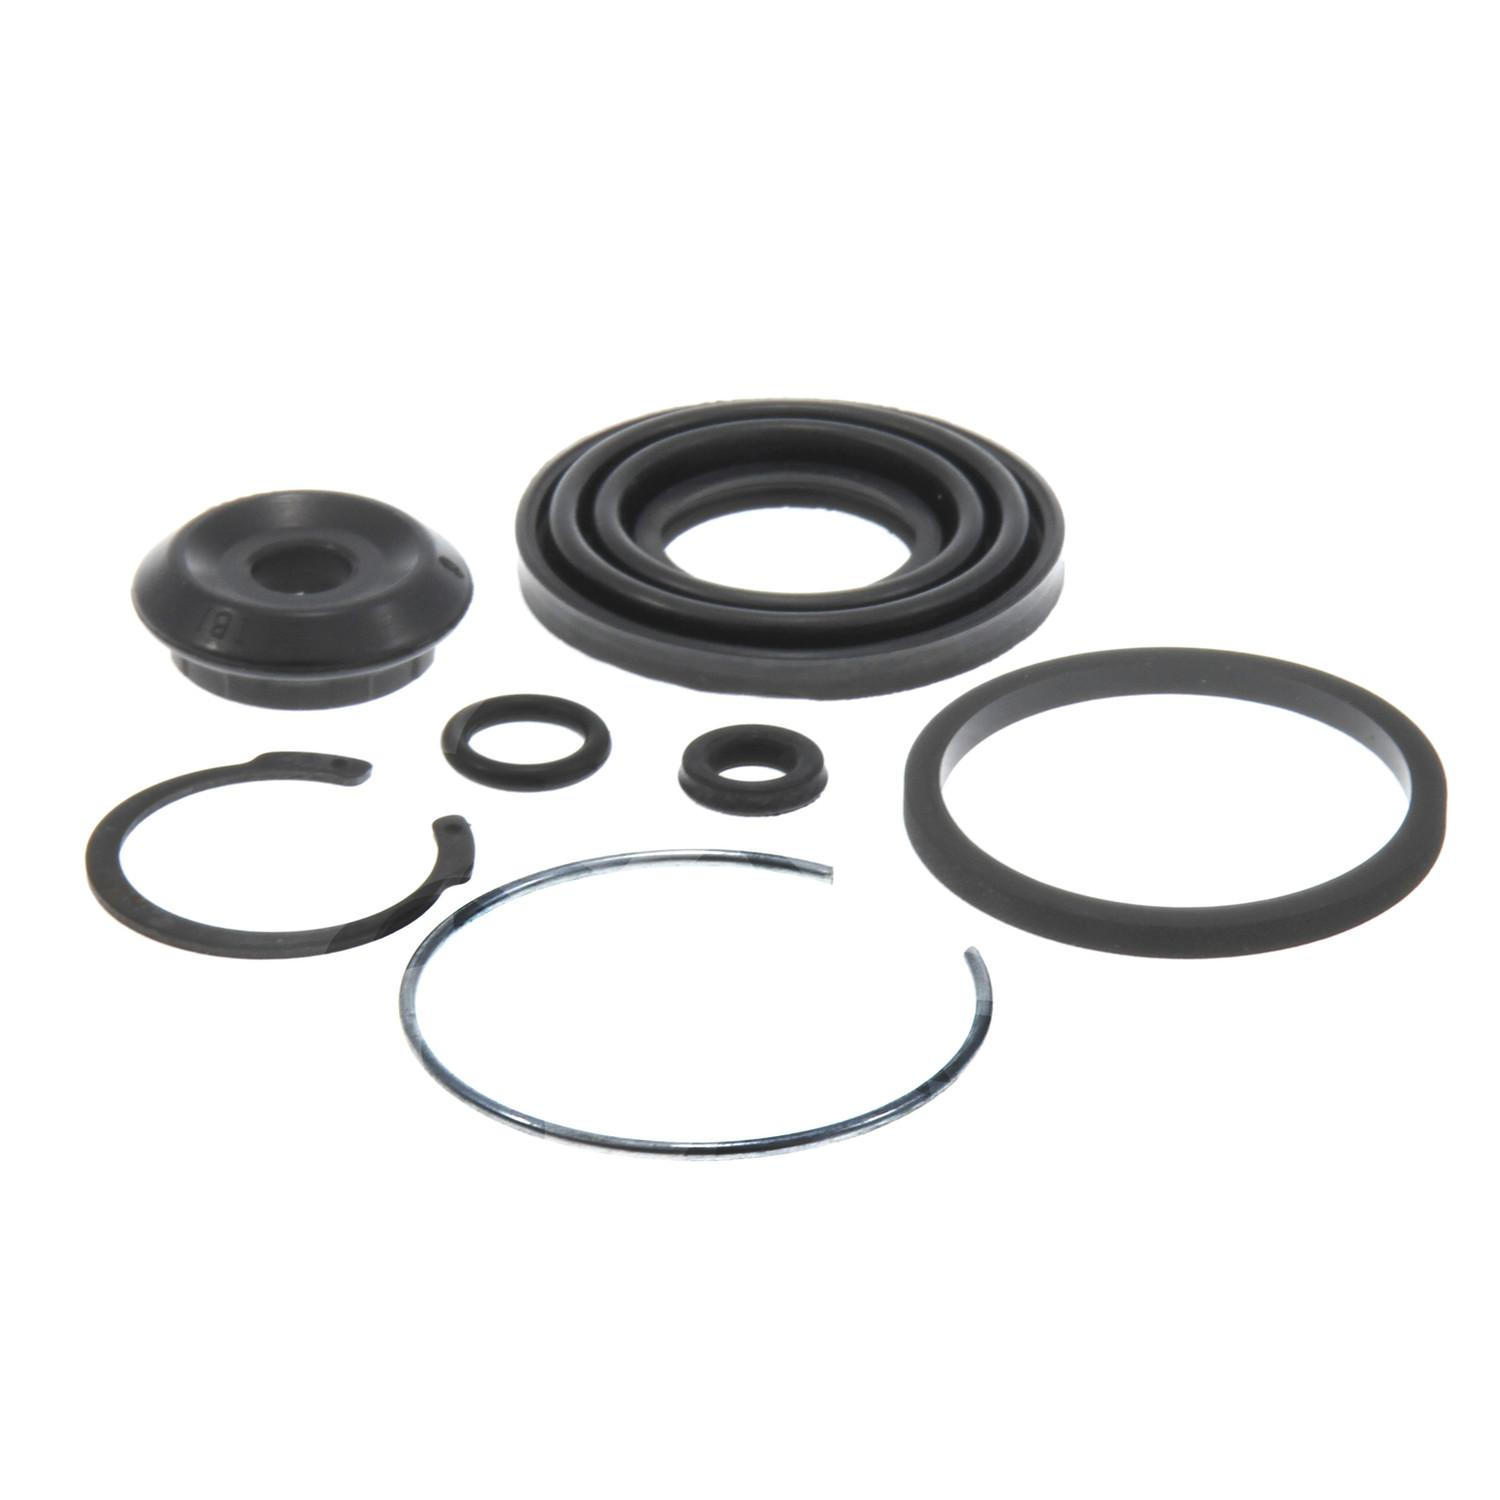 CENTRIC PARTS - Brake Caliper Repair Kit (Rear) - CEC 143.62043